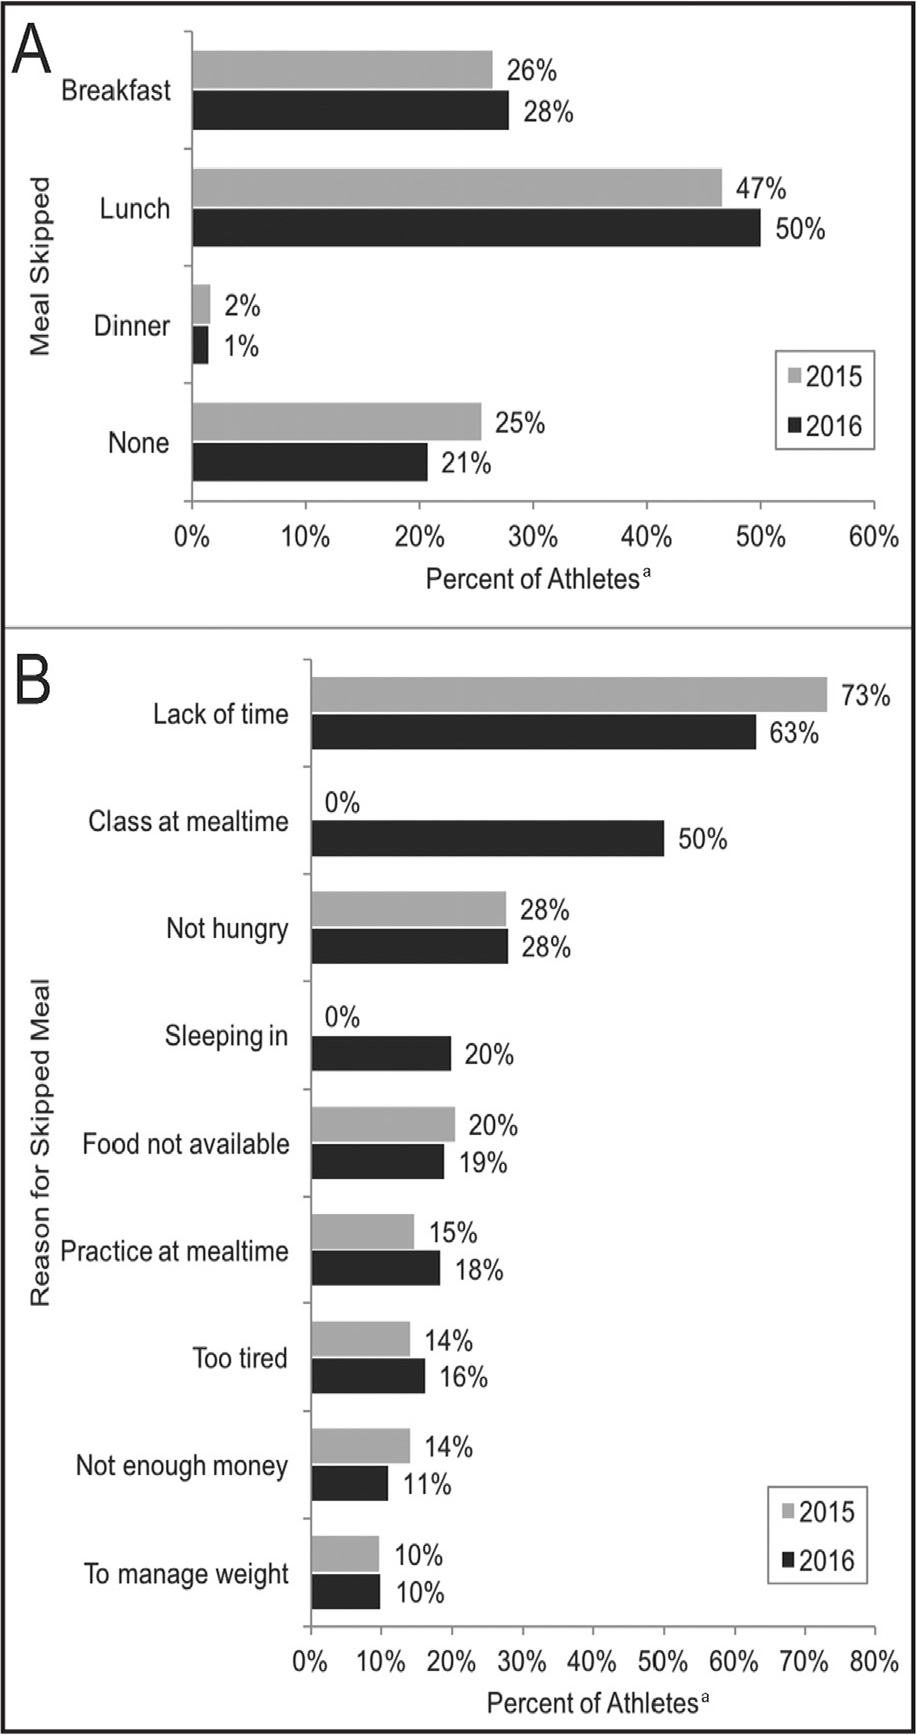 Athletes' meal skipping patterns and associated reasons for missing meals. (A) Lunch was reported as the most often skipped meal in both years. The athletic department provides free breakfast to all athletes. (B) Lack of time was the number one reason for skipping a meal during both years. The two responses with no data from 2015 were new on the 2016 survey. aPercentages based on the total number of athletes who completed the questions, n = 680 (2015) and n = 678 (2016).